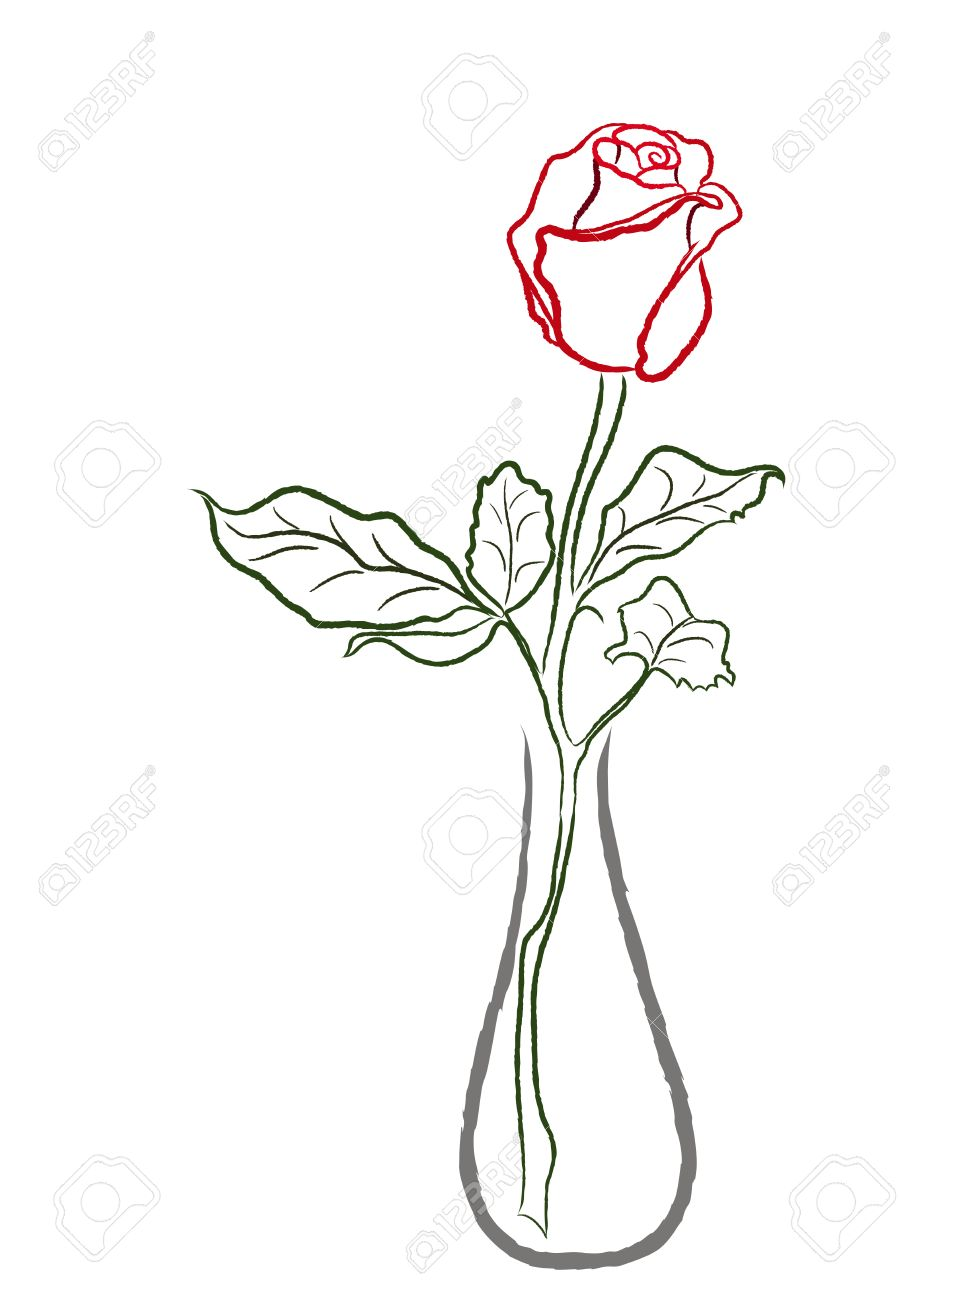 Stylized red rose in a vase isolated on white background hand stylized red rose in a vase isolated on white background hand drawing vector illustration stock floridaeventfo Choice Image